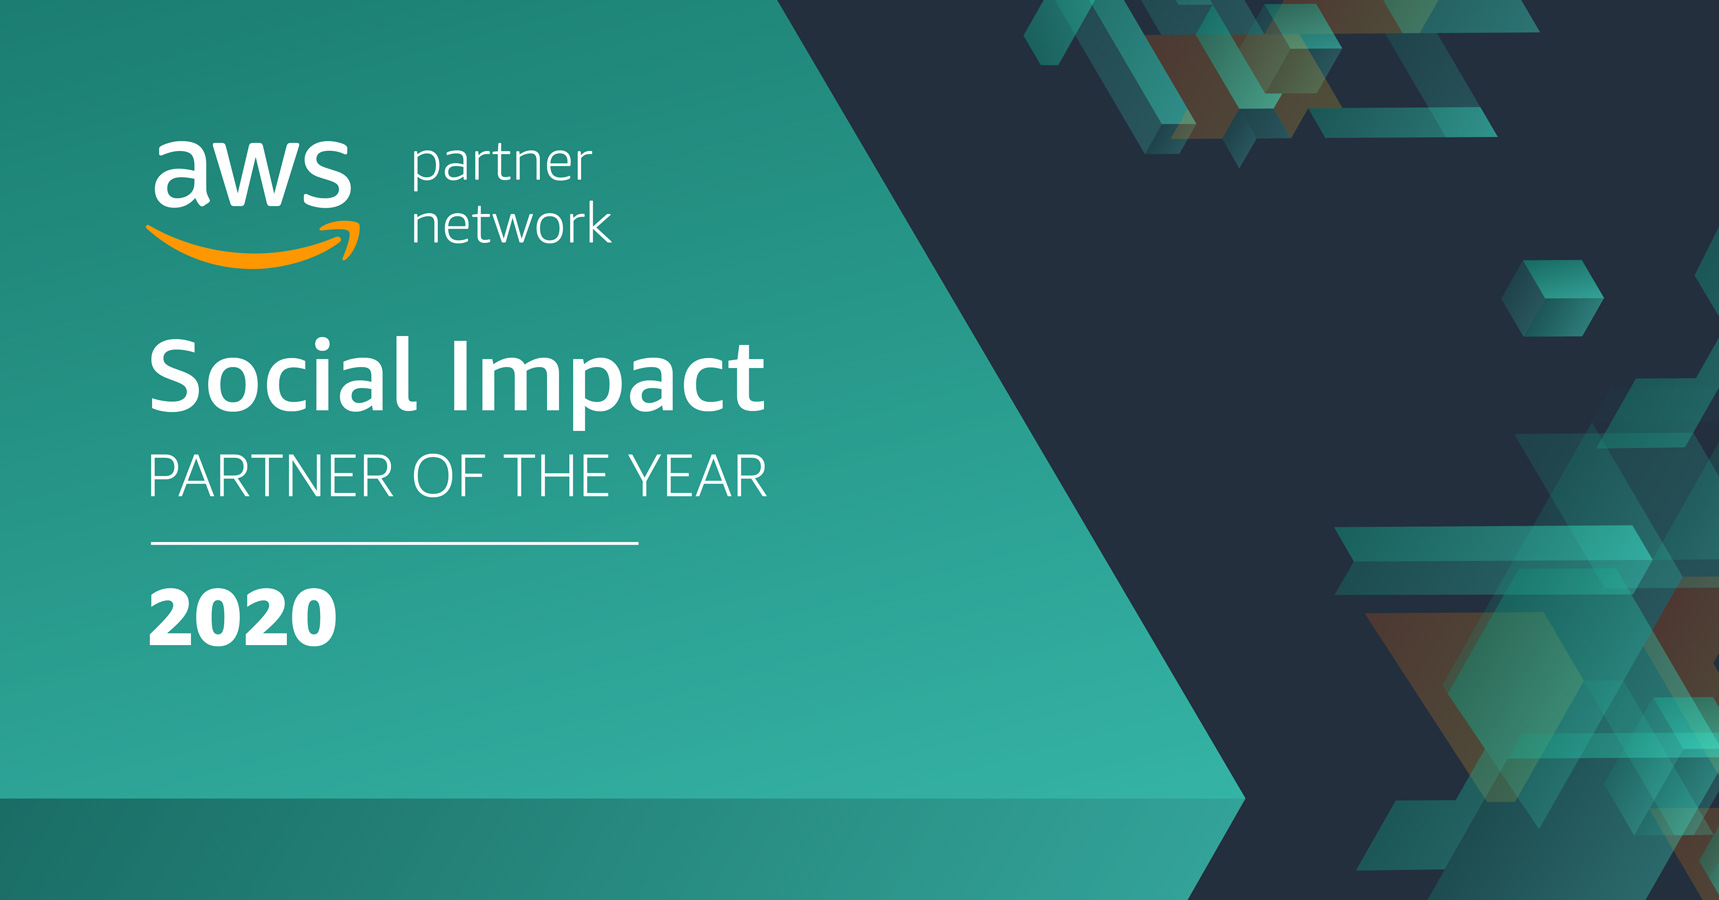 AWS Social Impact Partner of the Year